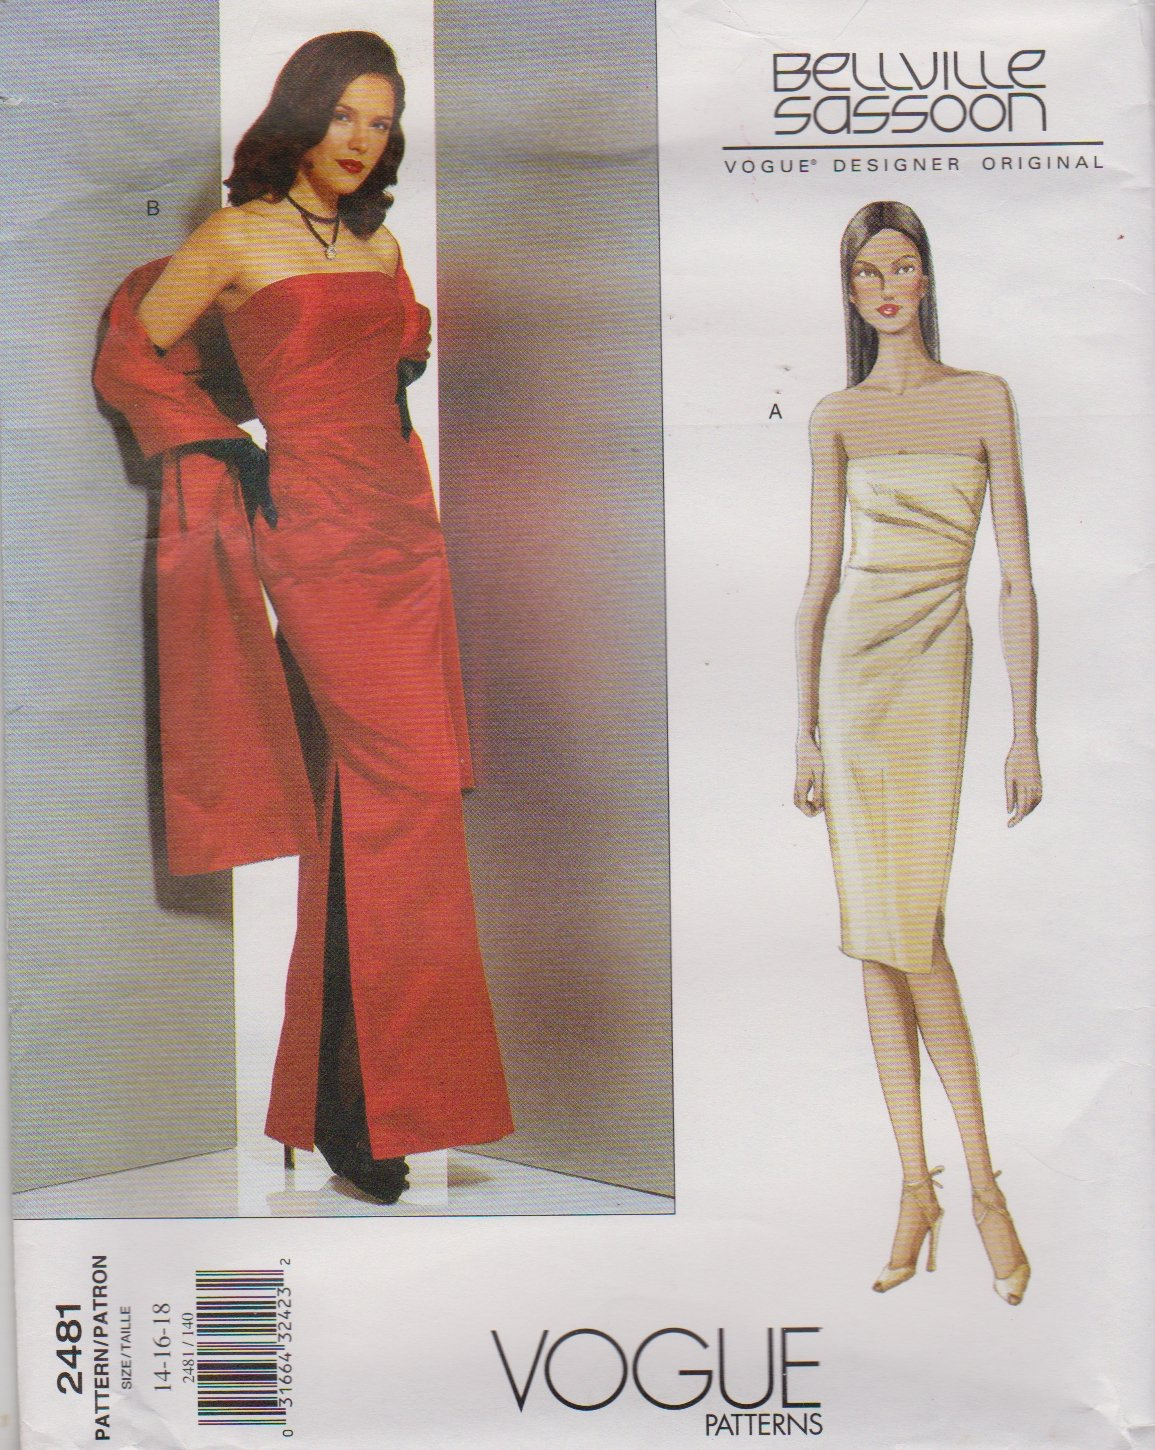 Vogue Sewing Pattern 2481 V2481 Misses Size 14-18 Bellville Sassoon Evening Gown Formal Dress